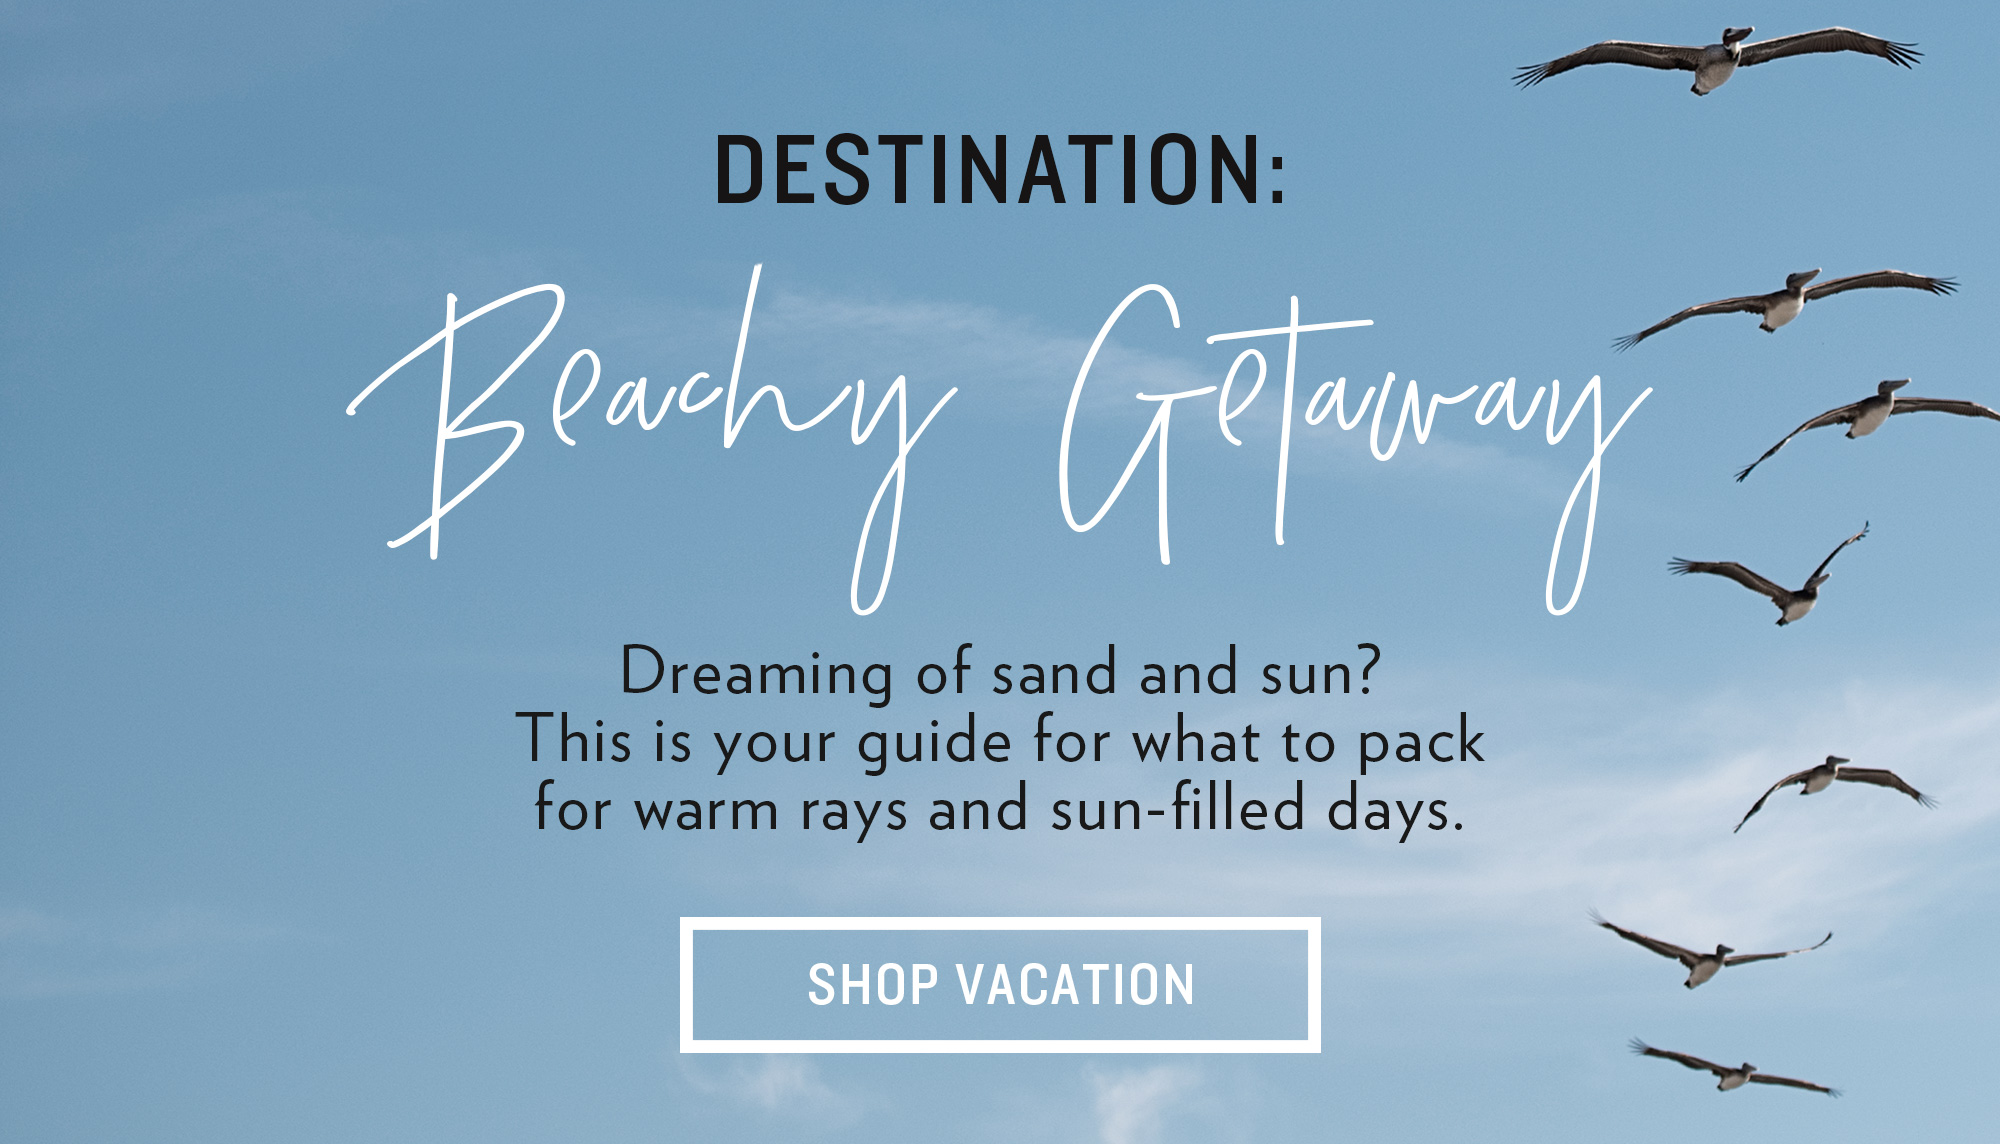 Destination: Beachy Getaway